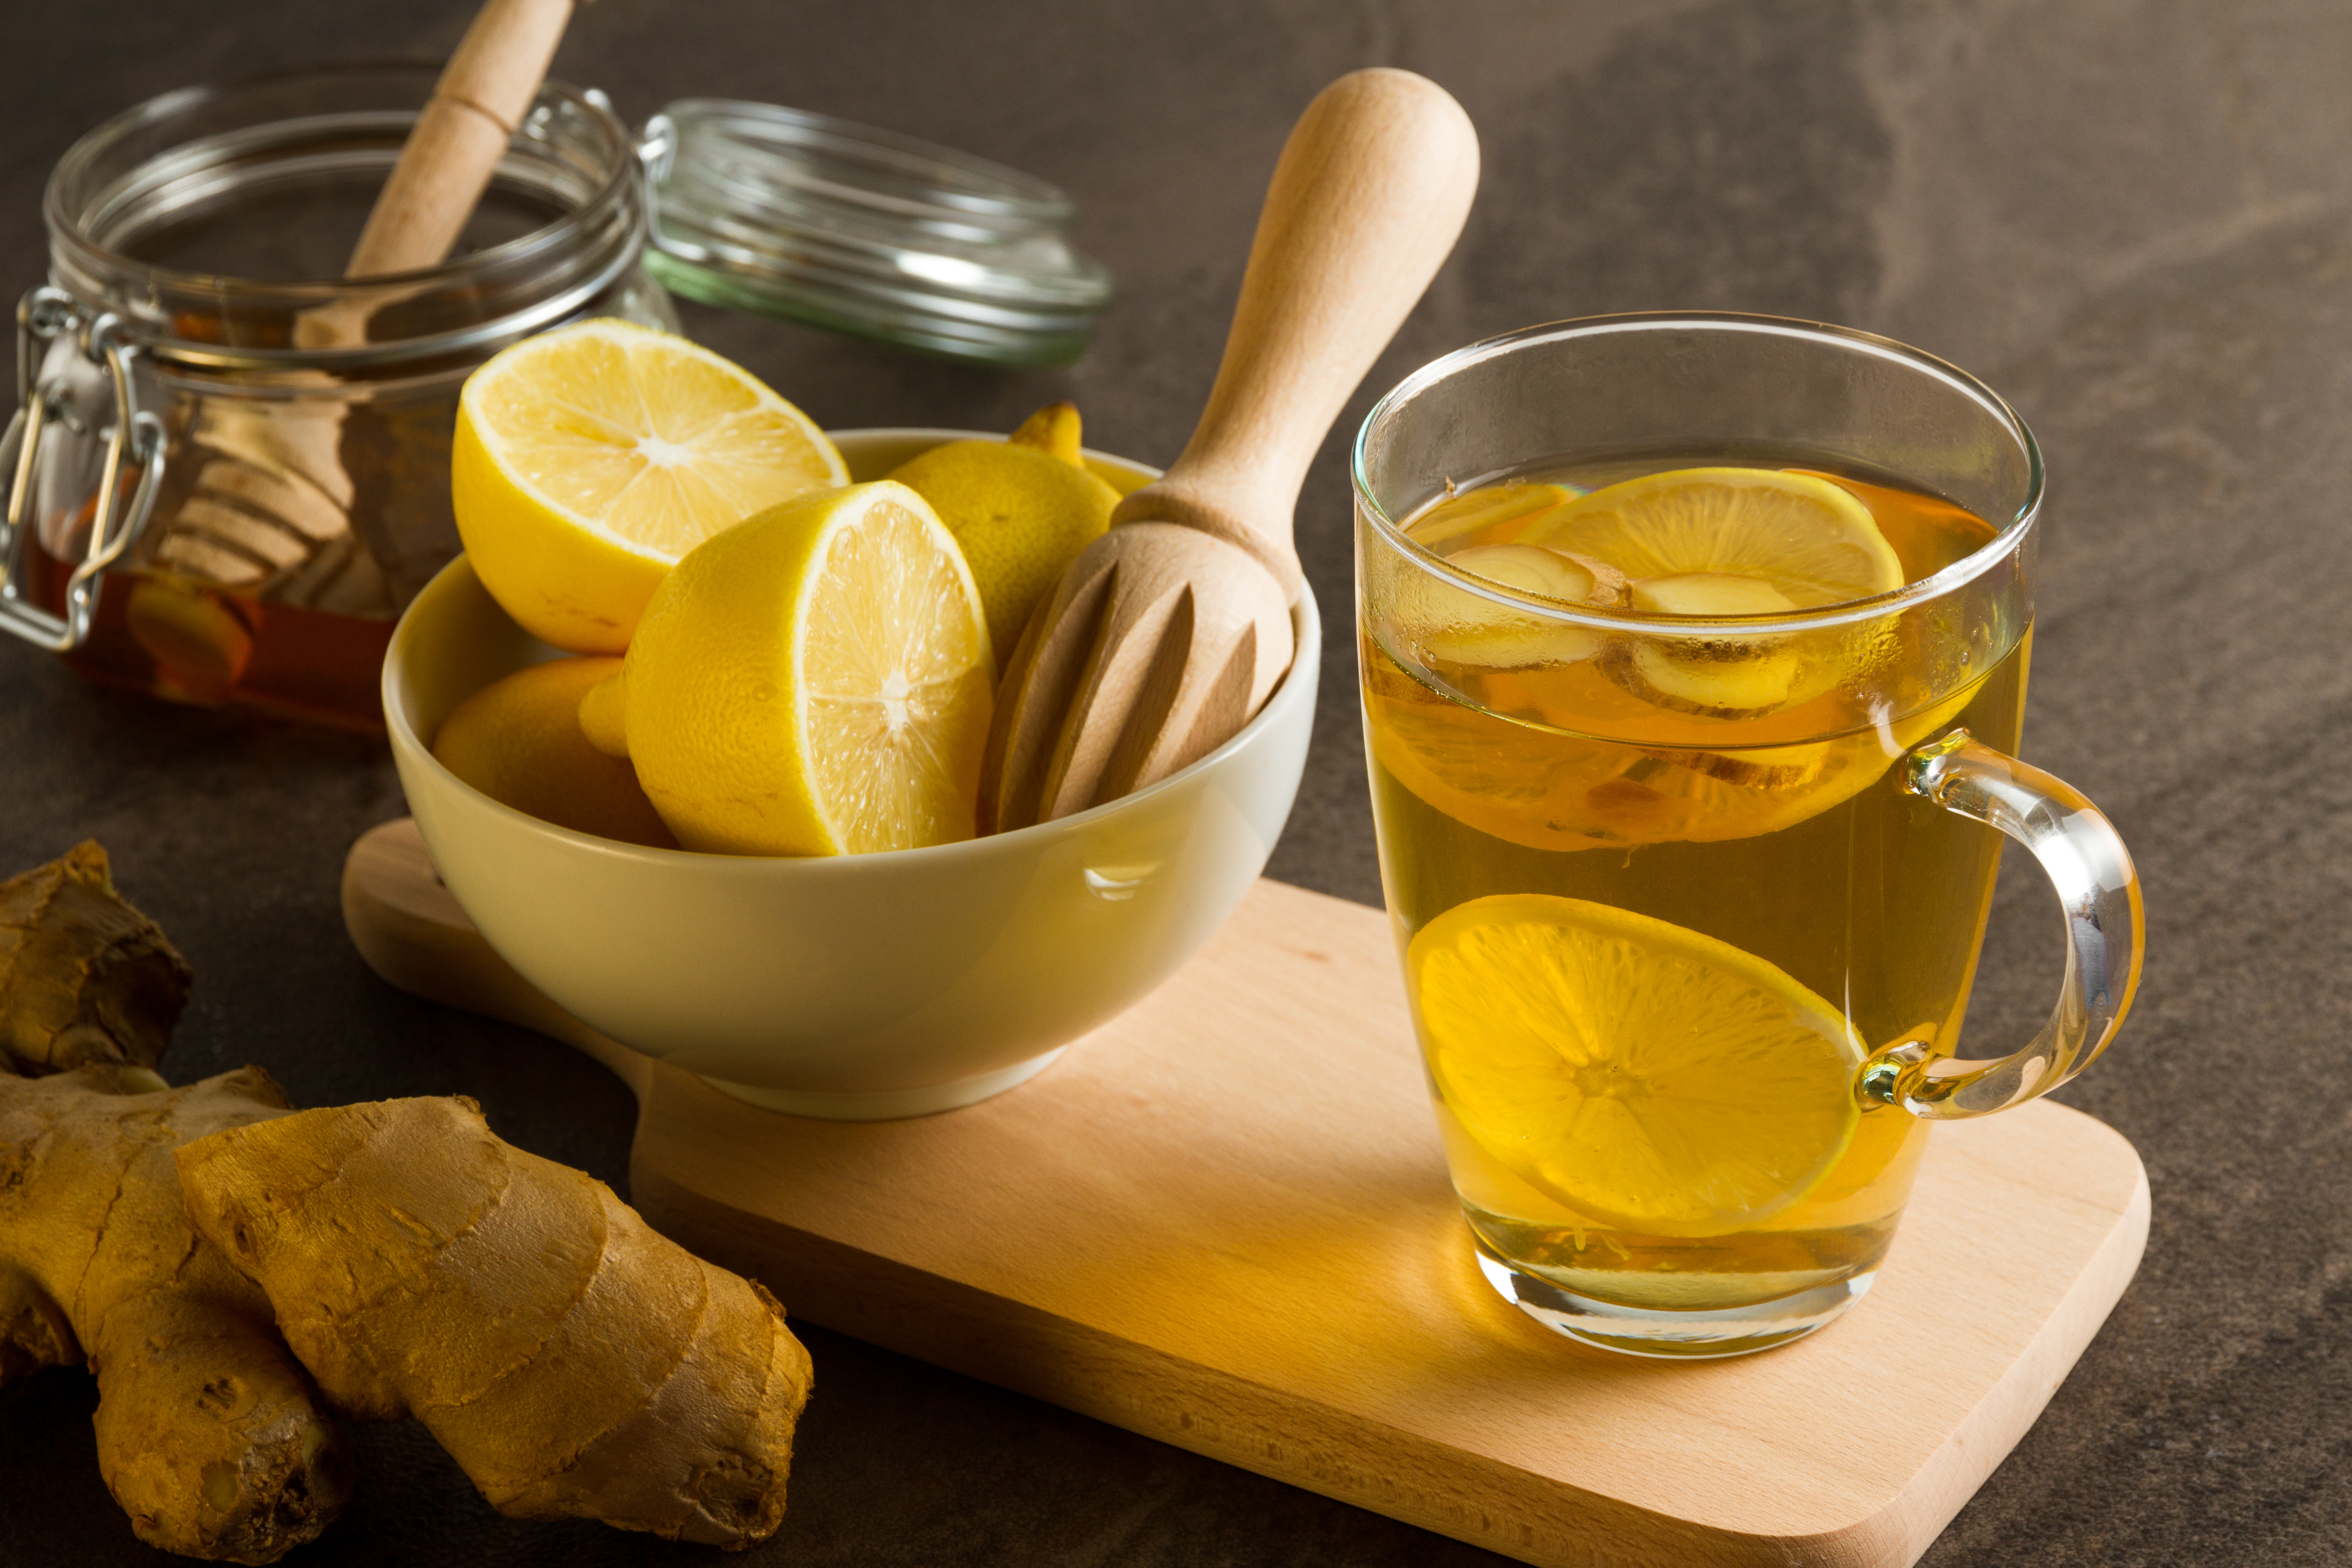 Fresh lemons, ginger and a glass of tea